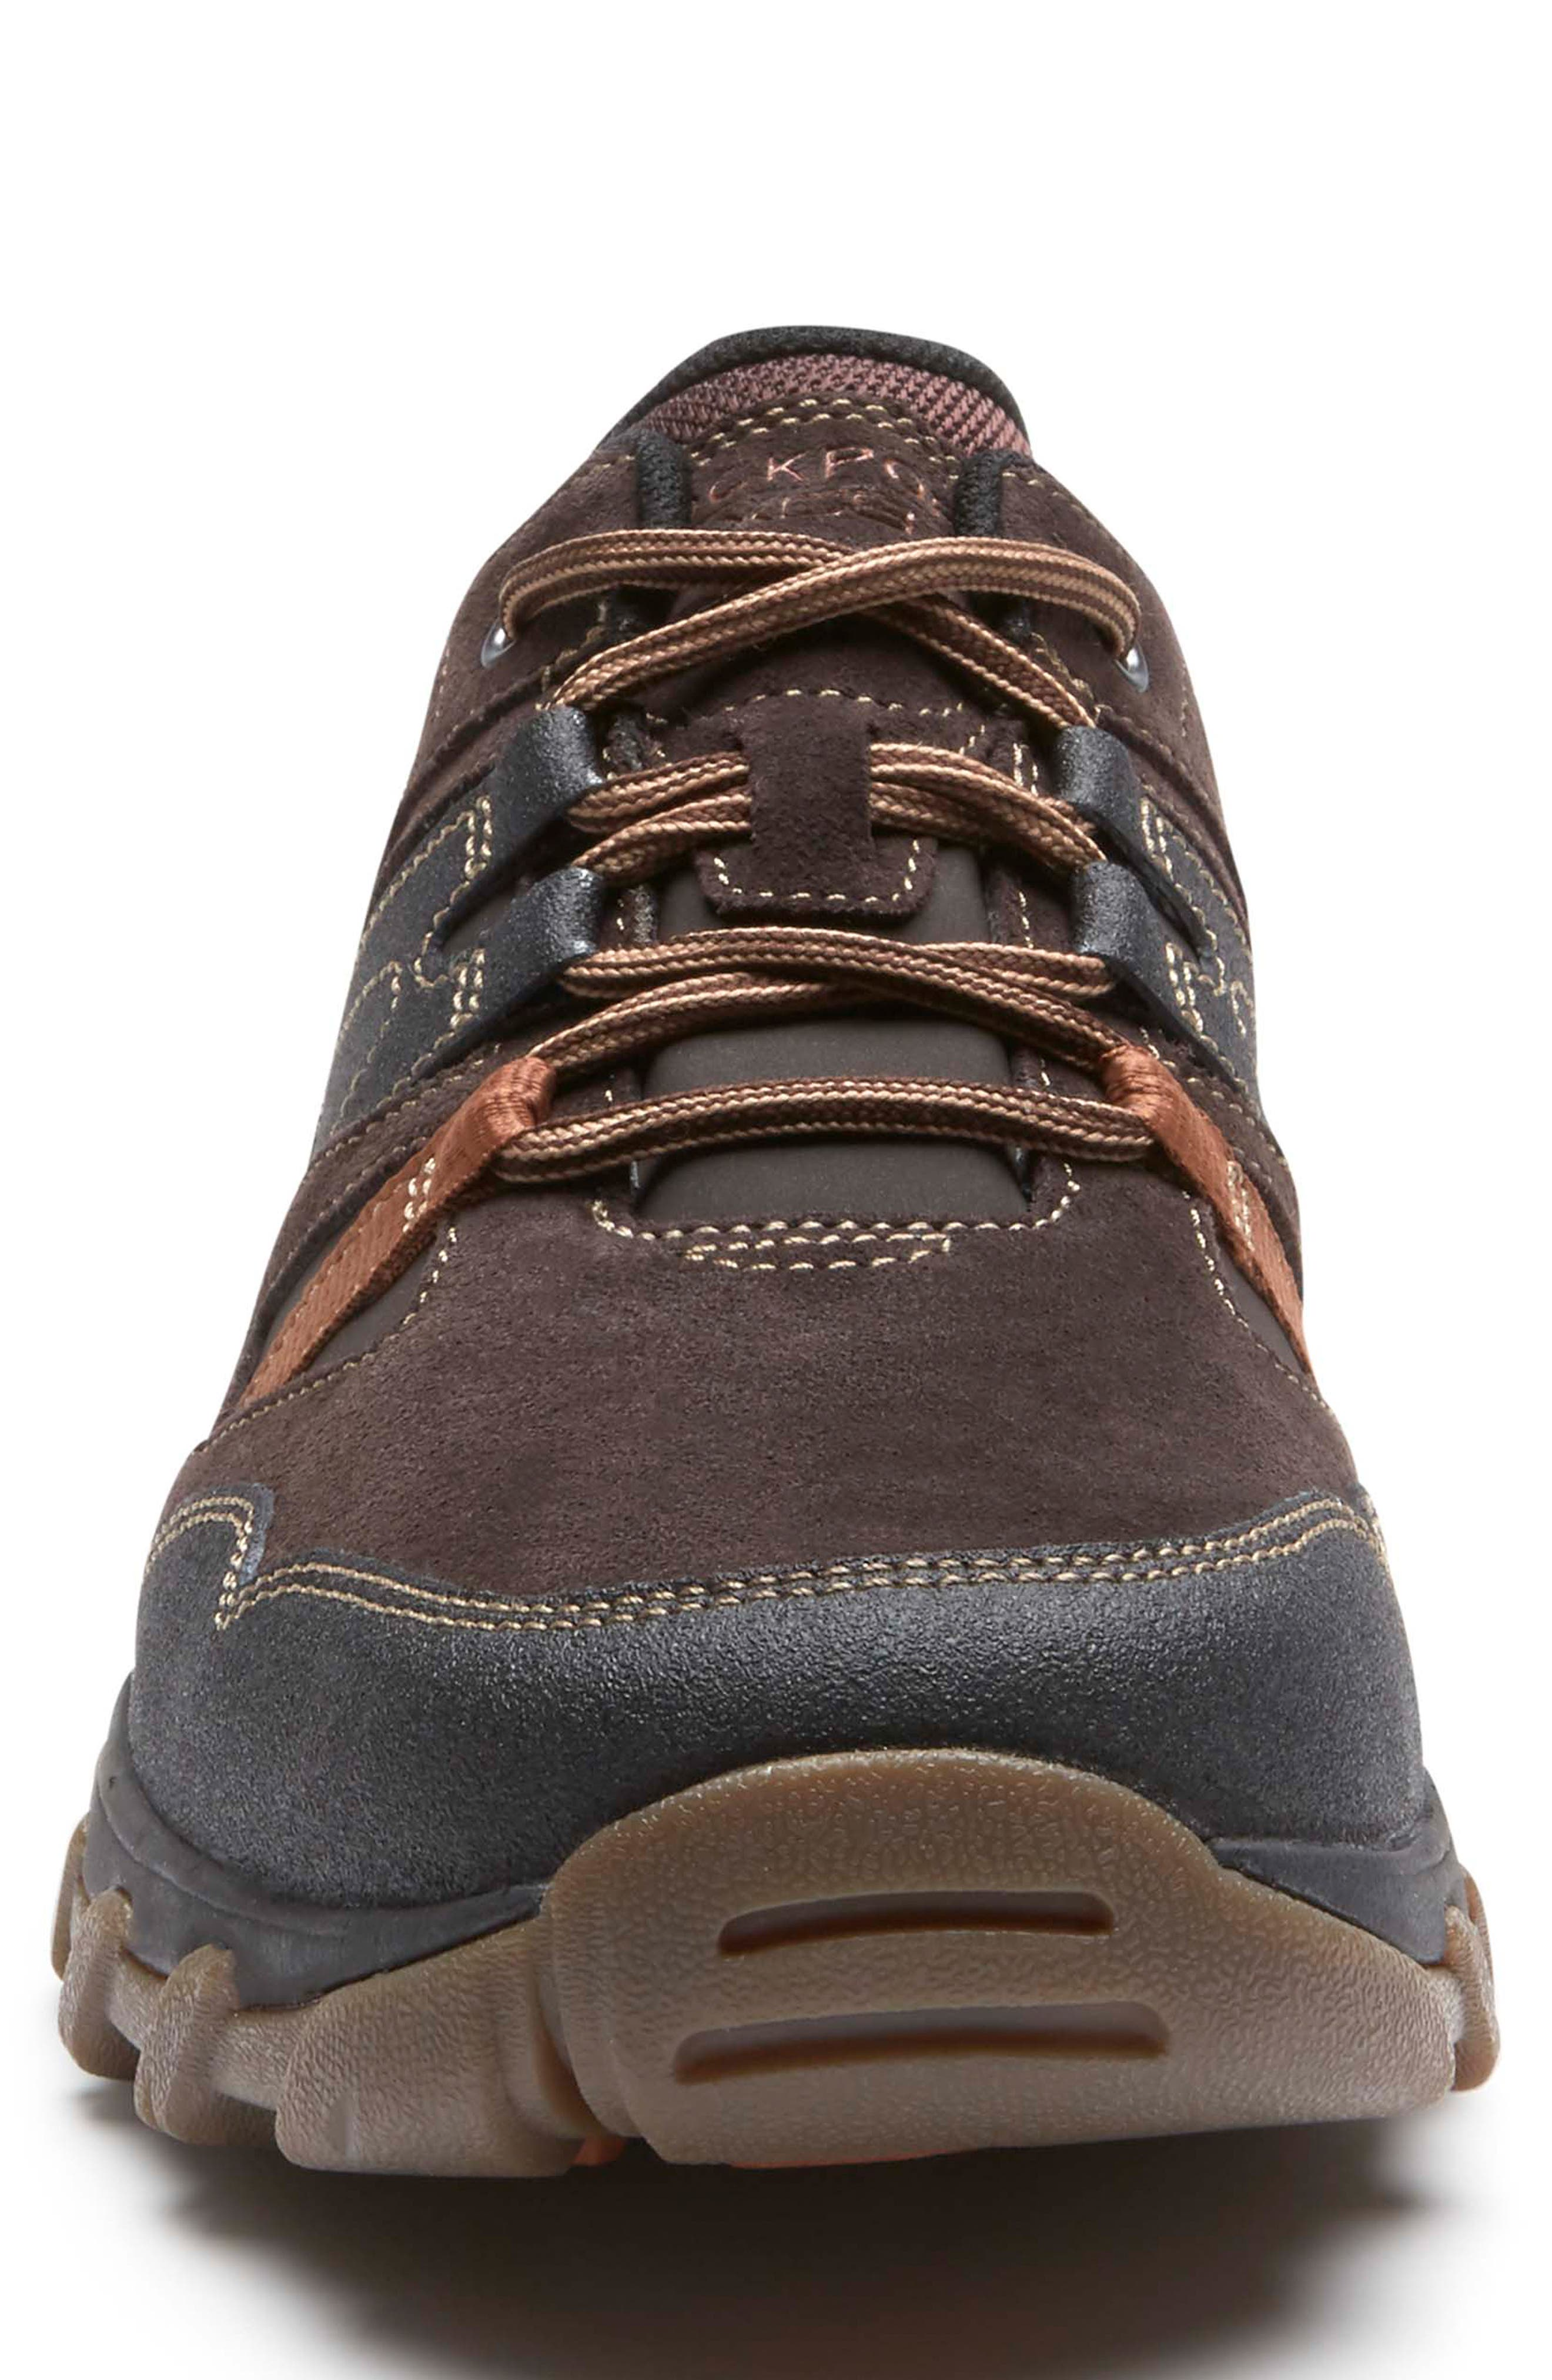 Cold Springs Plus Lace-Up Sneaker,                             Alternate thumbnail 4, color,                             DARK BROWN LEATHER